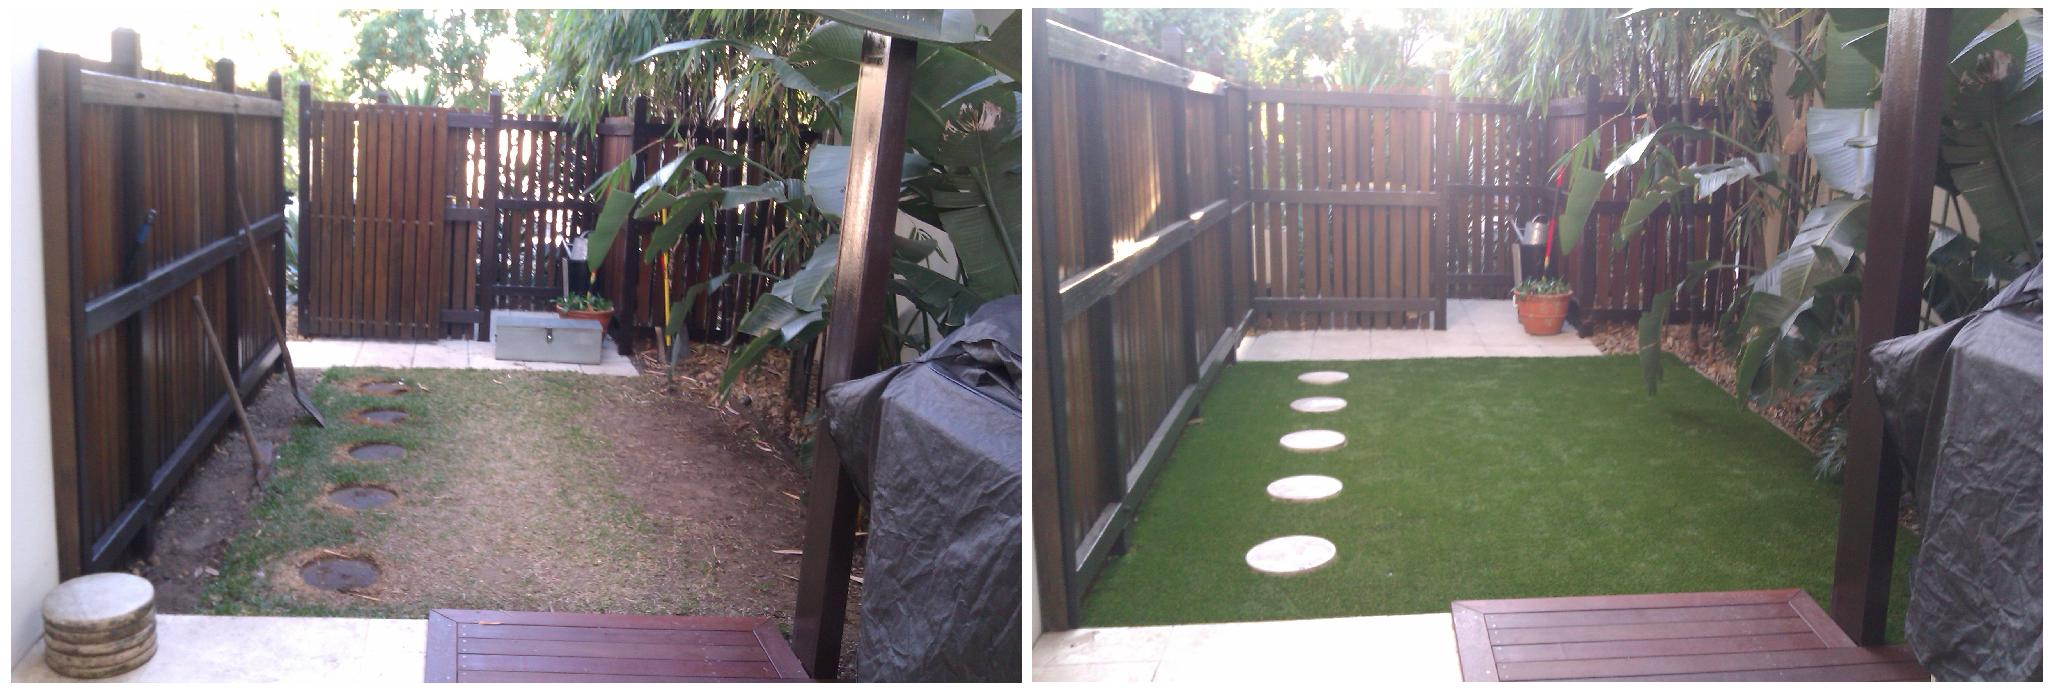 Bulimba synthetic Turf Courtyard